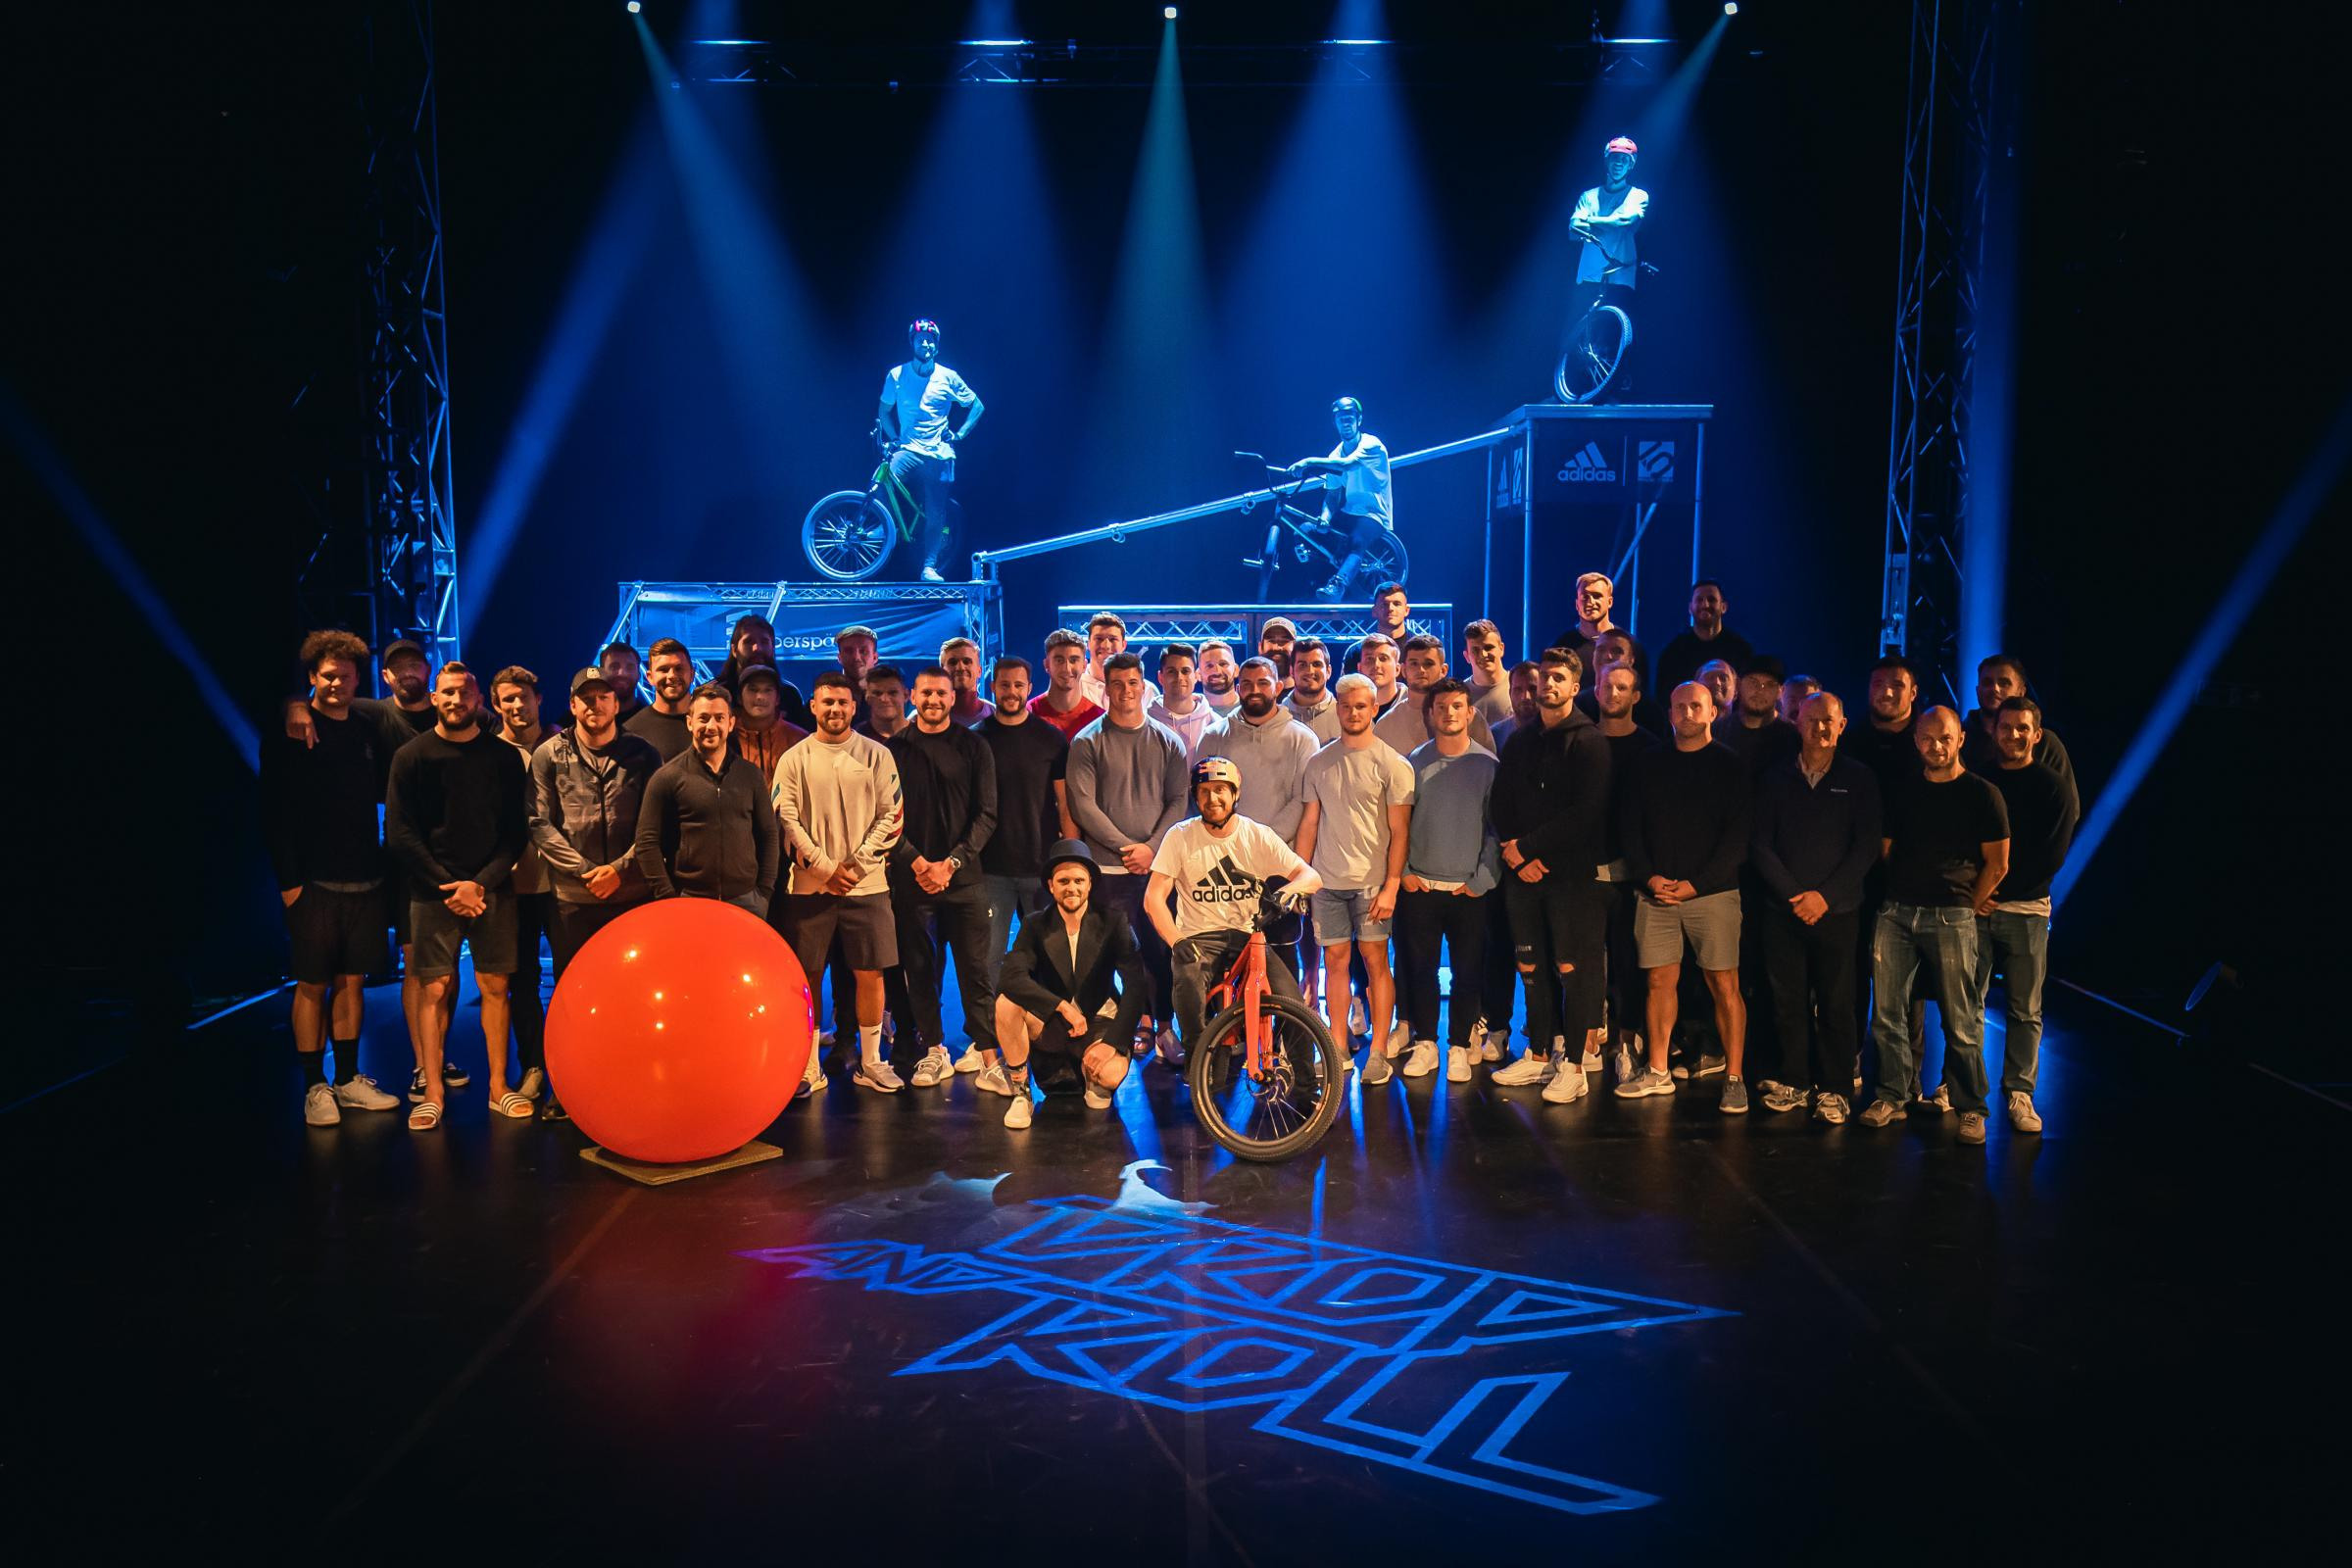 Scottish Rugby stars take in Danny MacAskill's show at Fringe Circus Hub